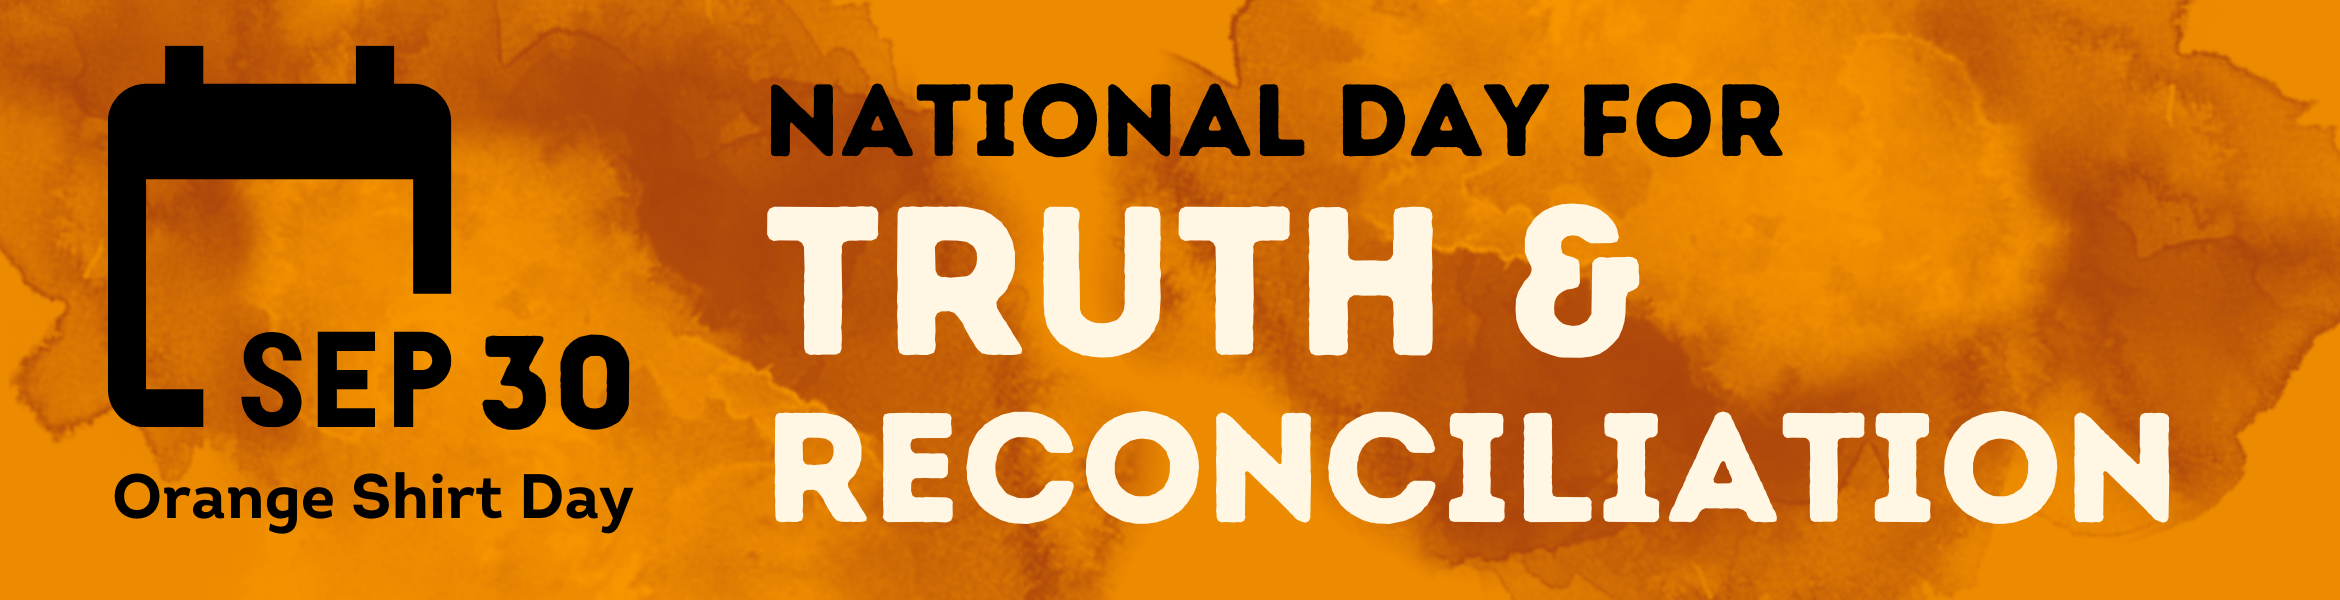 Sep 30: National Day for Truth & Reconciliation